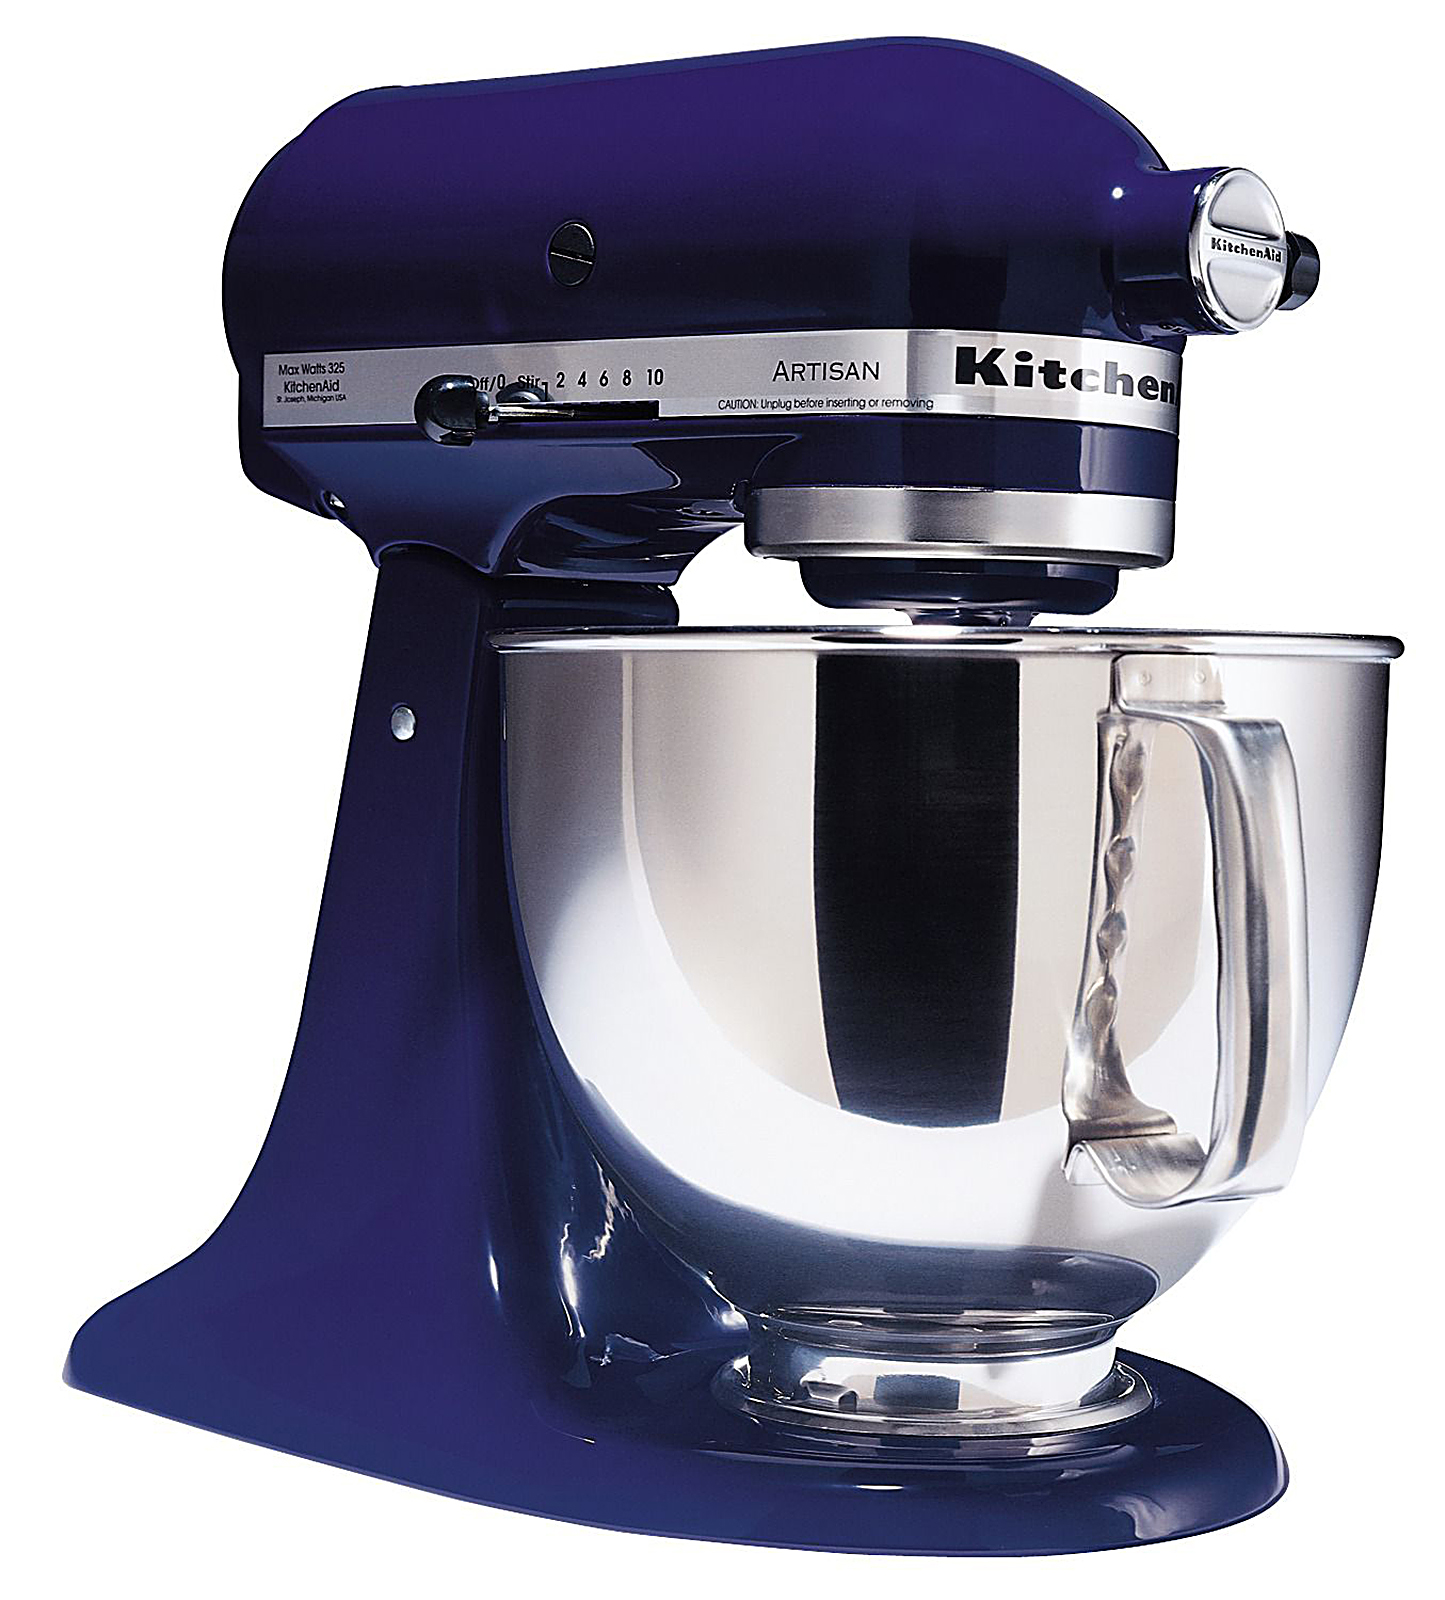 kitchen aid mixers on sale cabinet colors for small kitchens kitchenaid ksm150psb artisan series 5 quart stand mixer